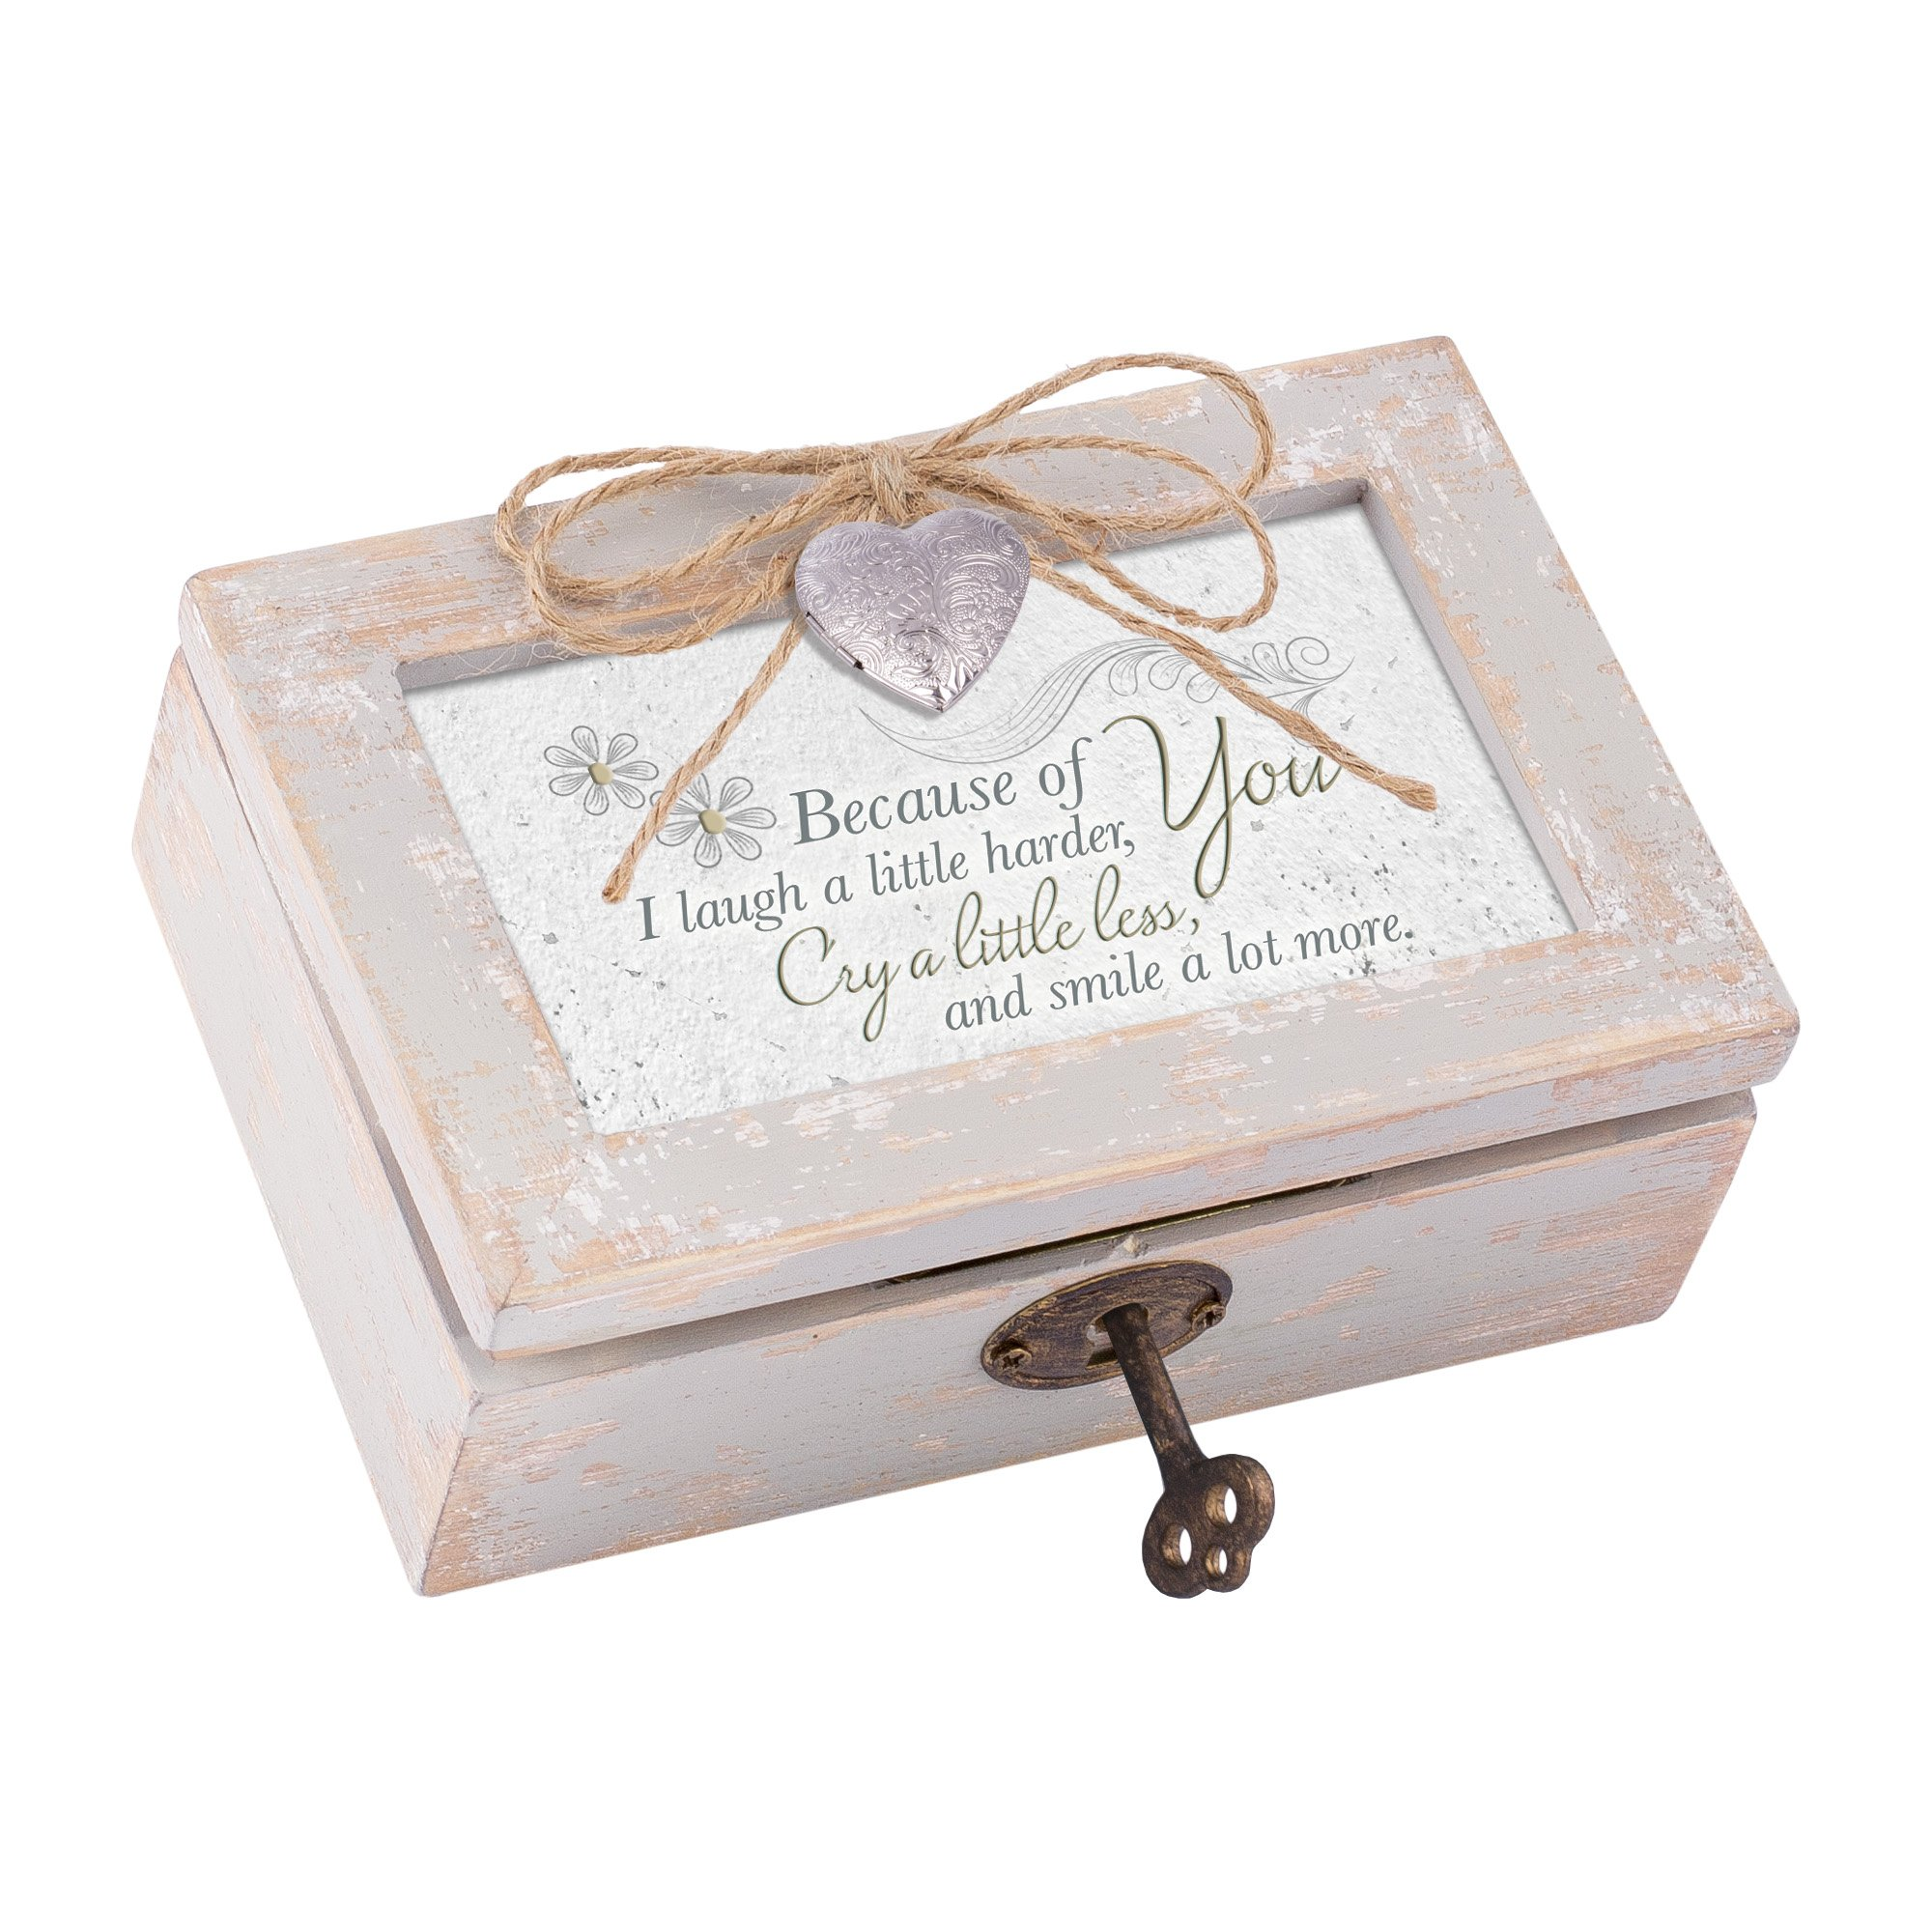 Because of You Smile Distressed Wood Locket Jewelry Music Box Plays Tune That's What Friends are For